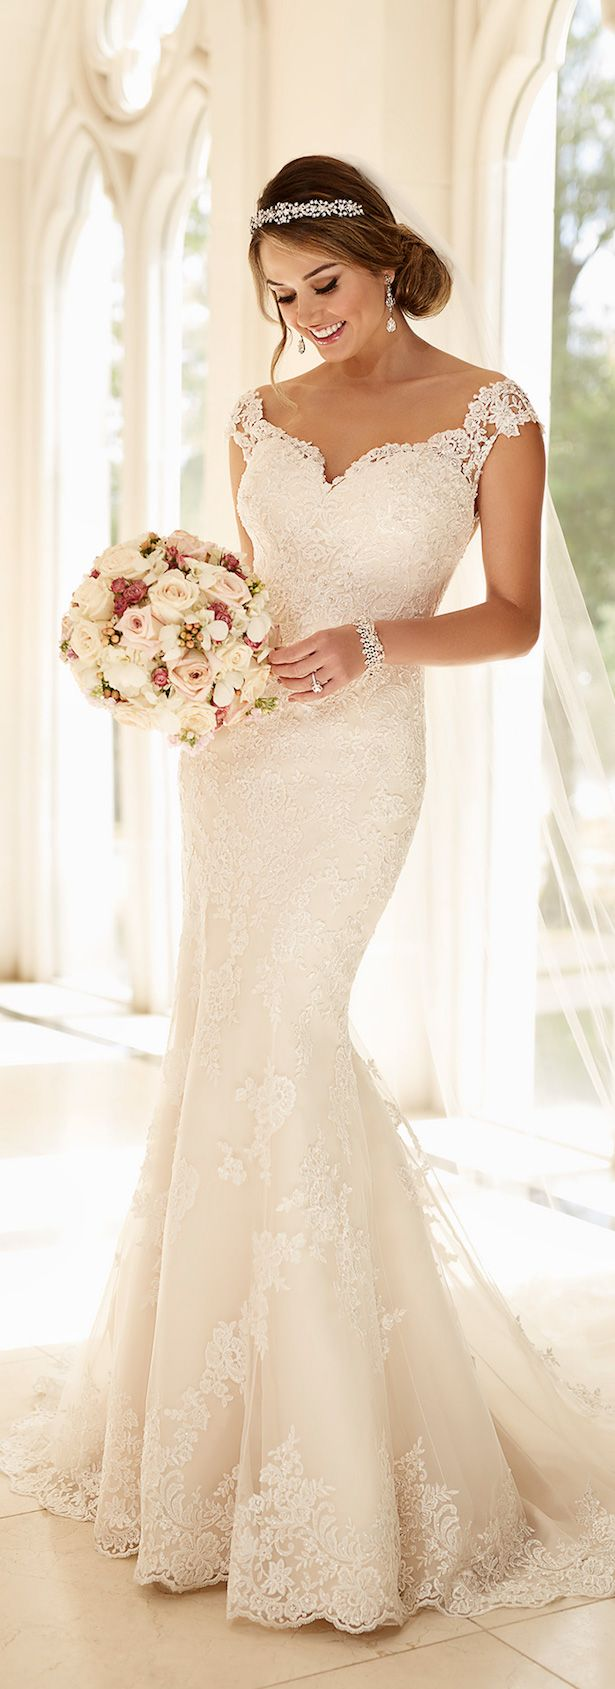 Wedding Stella York Wedding Dresses 17 best ideas about stella york on pinterest wedding dresses nyc bridal and gowns